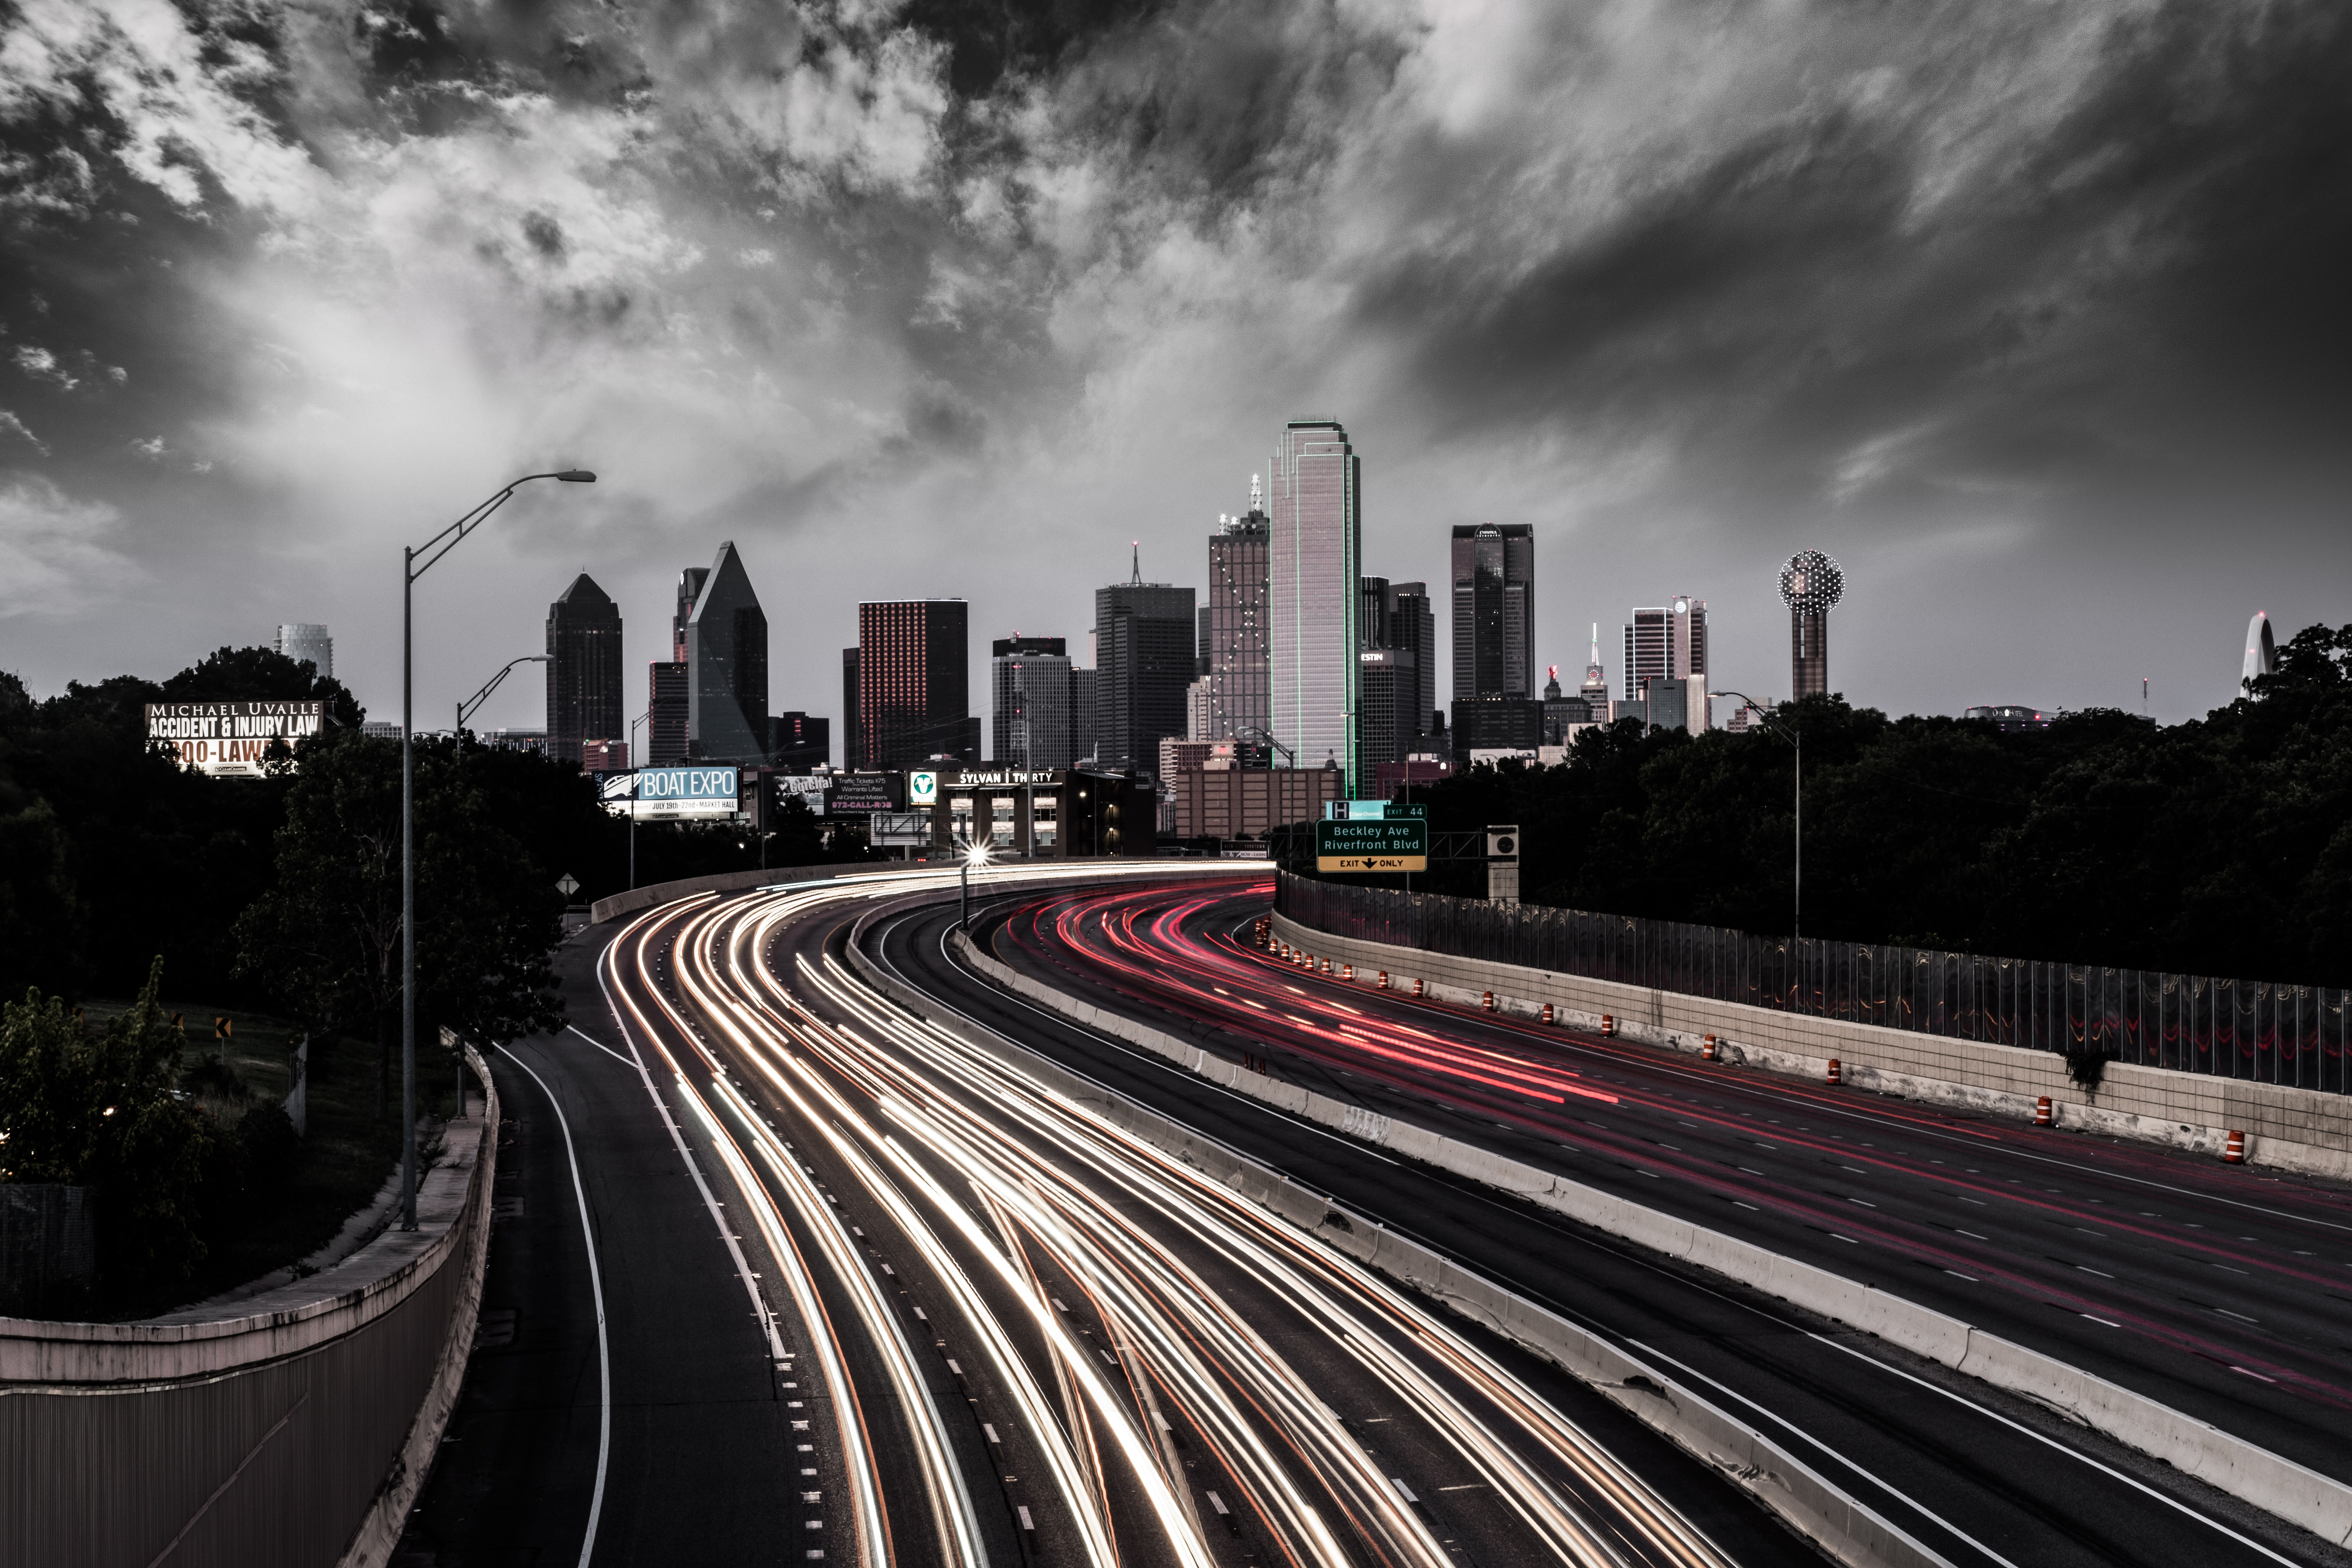 Highway skyline view of Dallas.